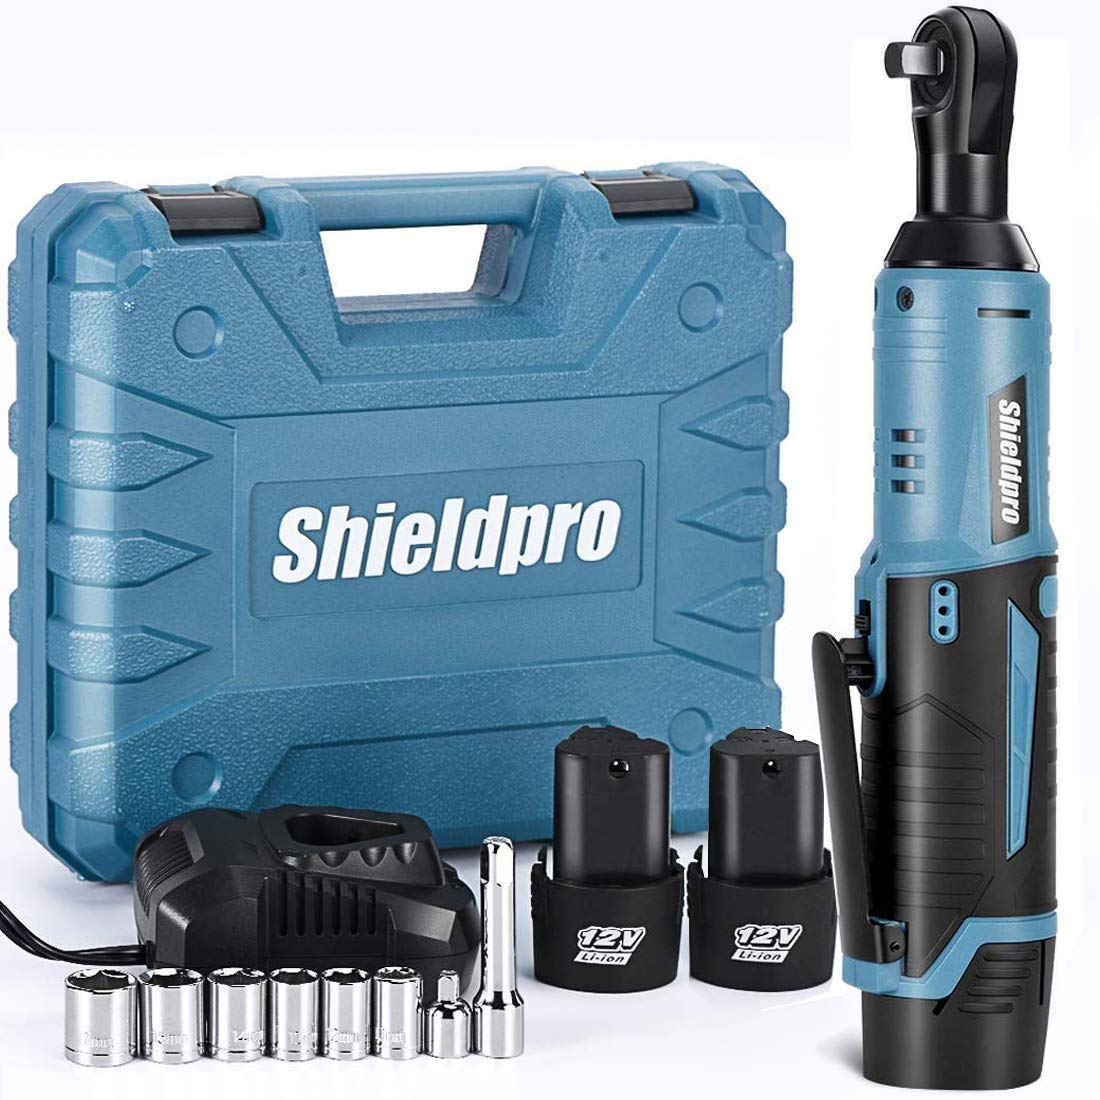 "Shieldpro Cordless Electric Ratchet Wrench Kit,40Ft-lb 3/8""Power Ratchet Wrench 1-Hour Fast Charge,2 Packs 2000MA Lithium-Lon Battery,1/4 Adaptor,Extension Bar"